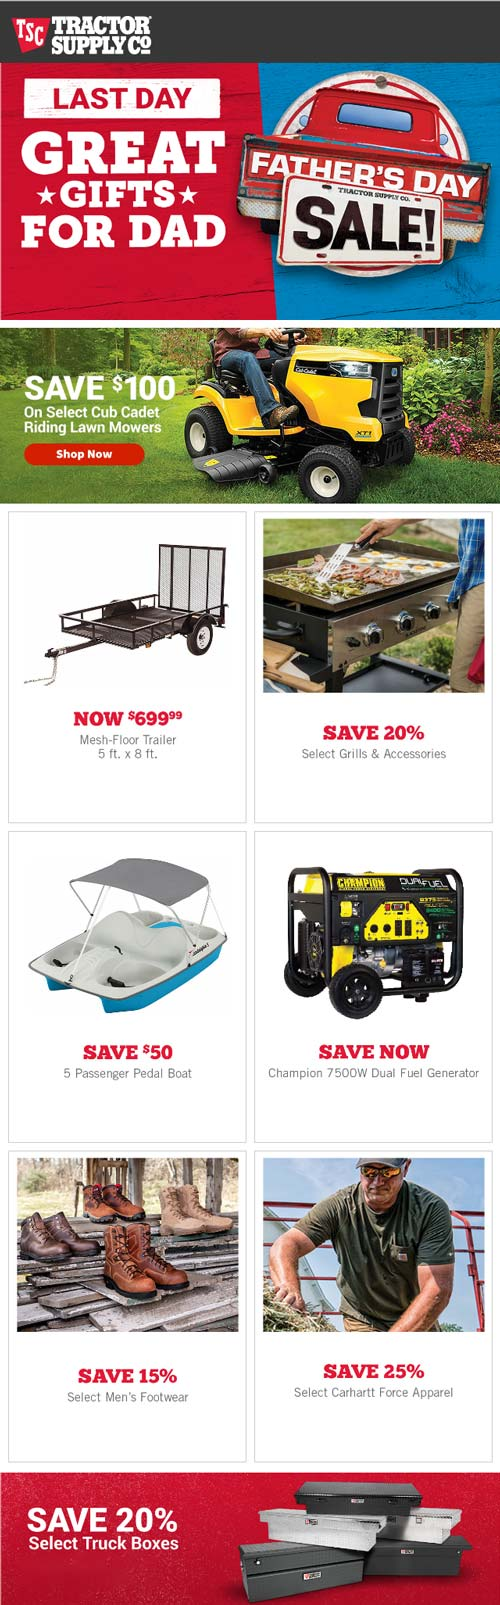 Tractor Supply Co Coupon December 2019 20% off truck boxes & more at Tractor Supply Co, ditto online